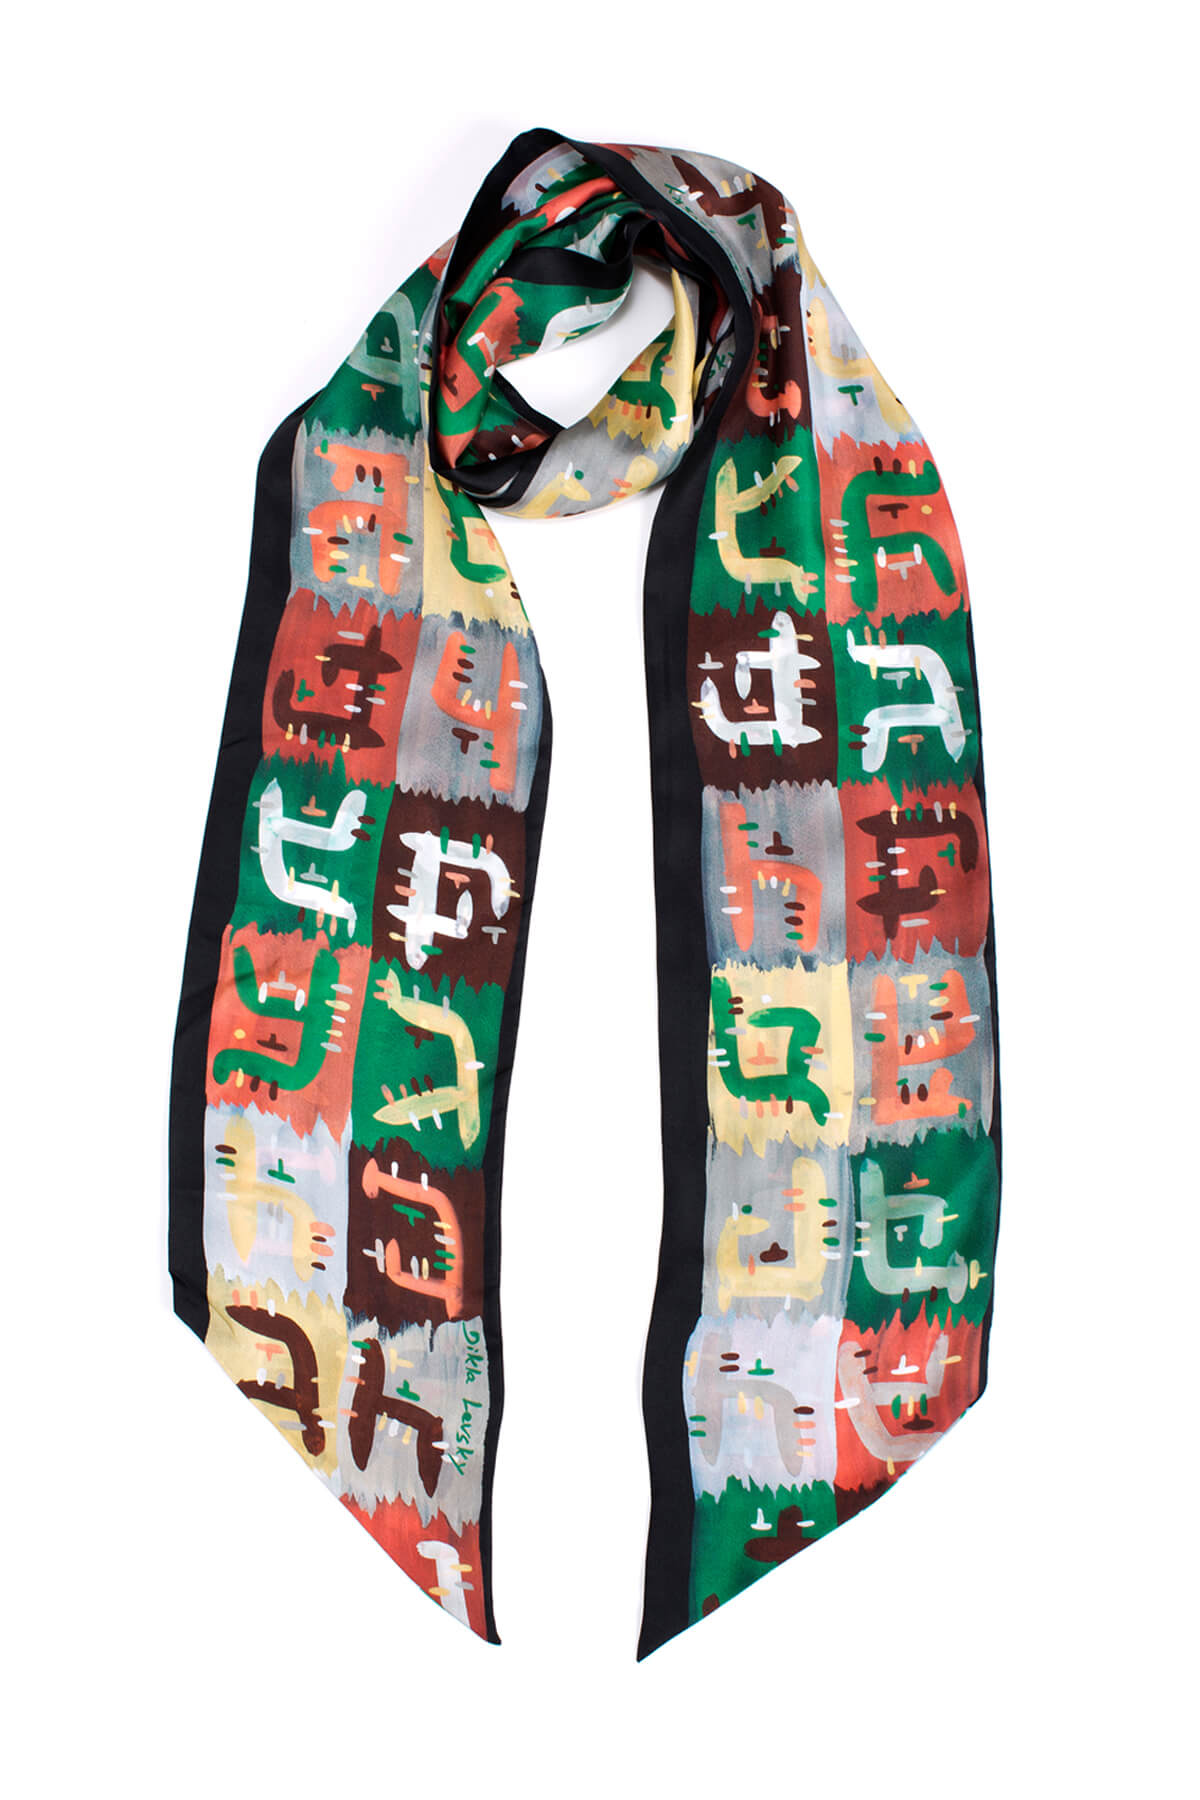 .printed scarf, skinny scarf, luxury accessories, silk twill scarf, extra long scarf, dikla levsky, statement accessory, statement scarf, made in italy